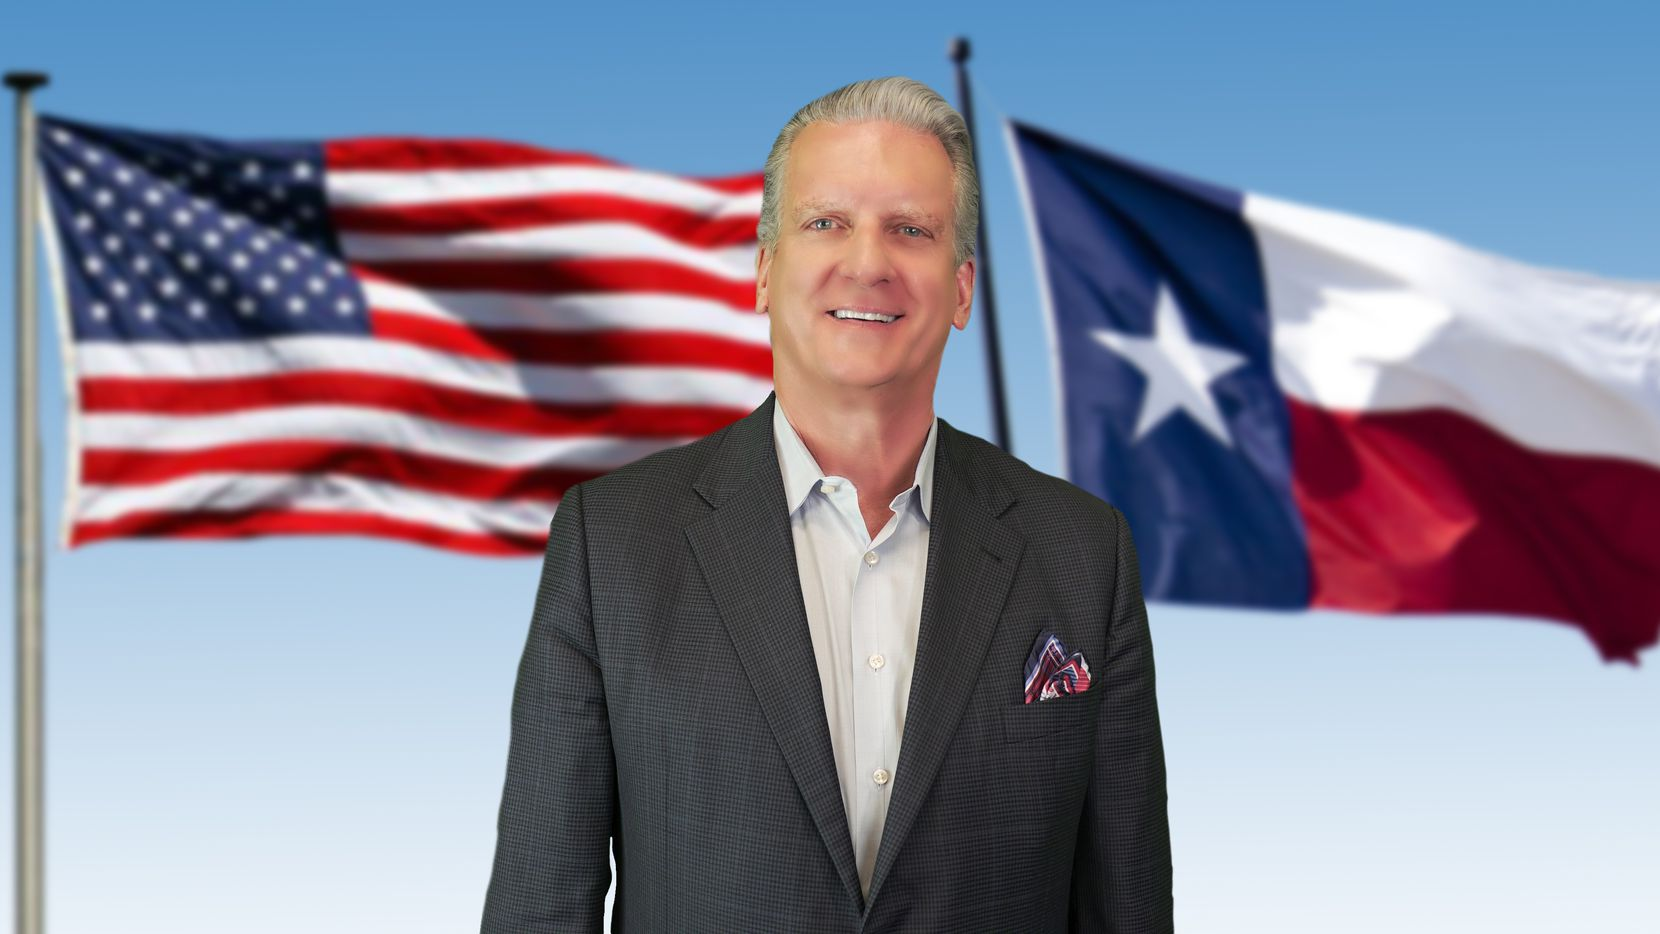 Mark Yancey is the chairman and CEO of Attacca International, an independent, privately held mergers and acquisitions boutique firm based in Dallas.